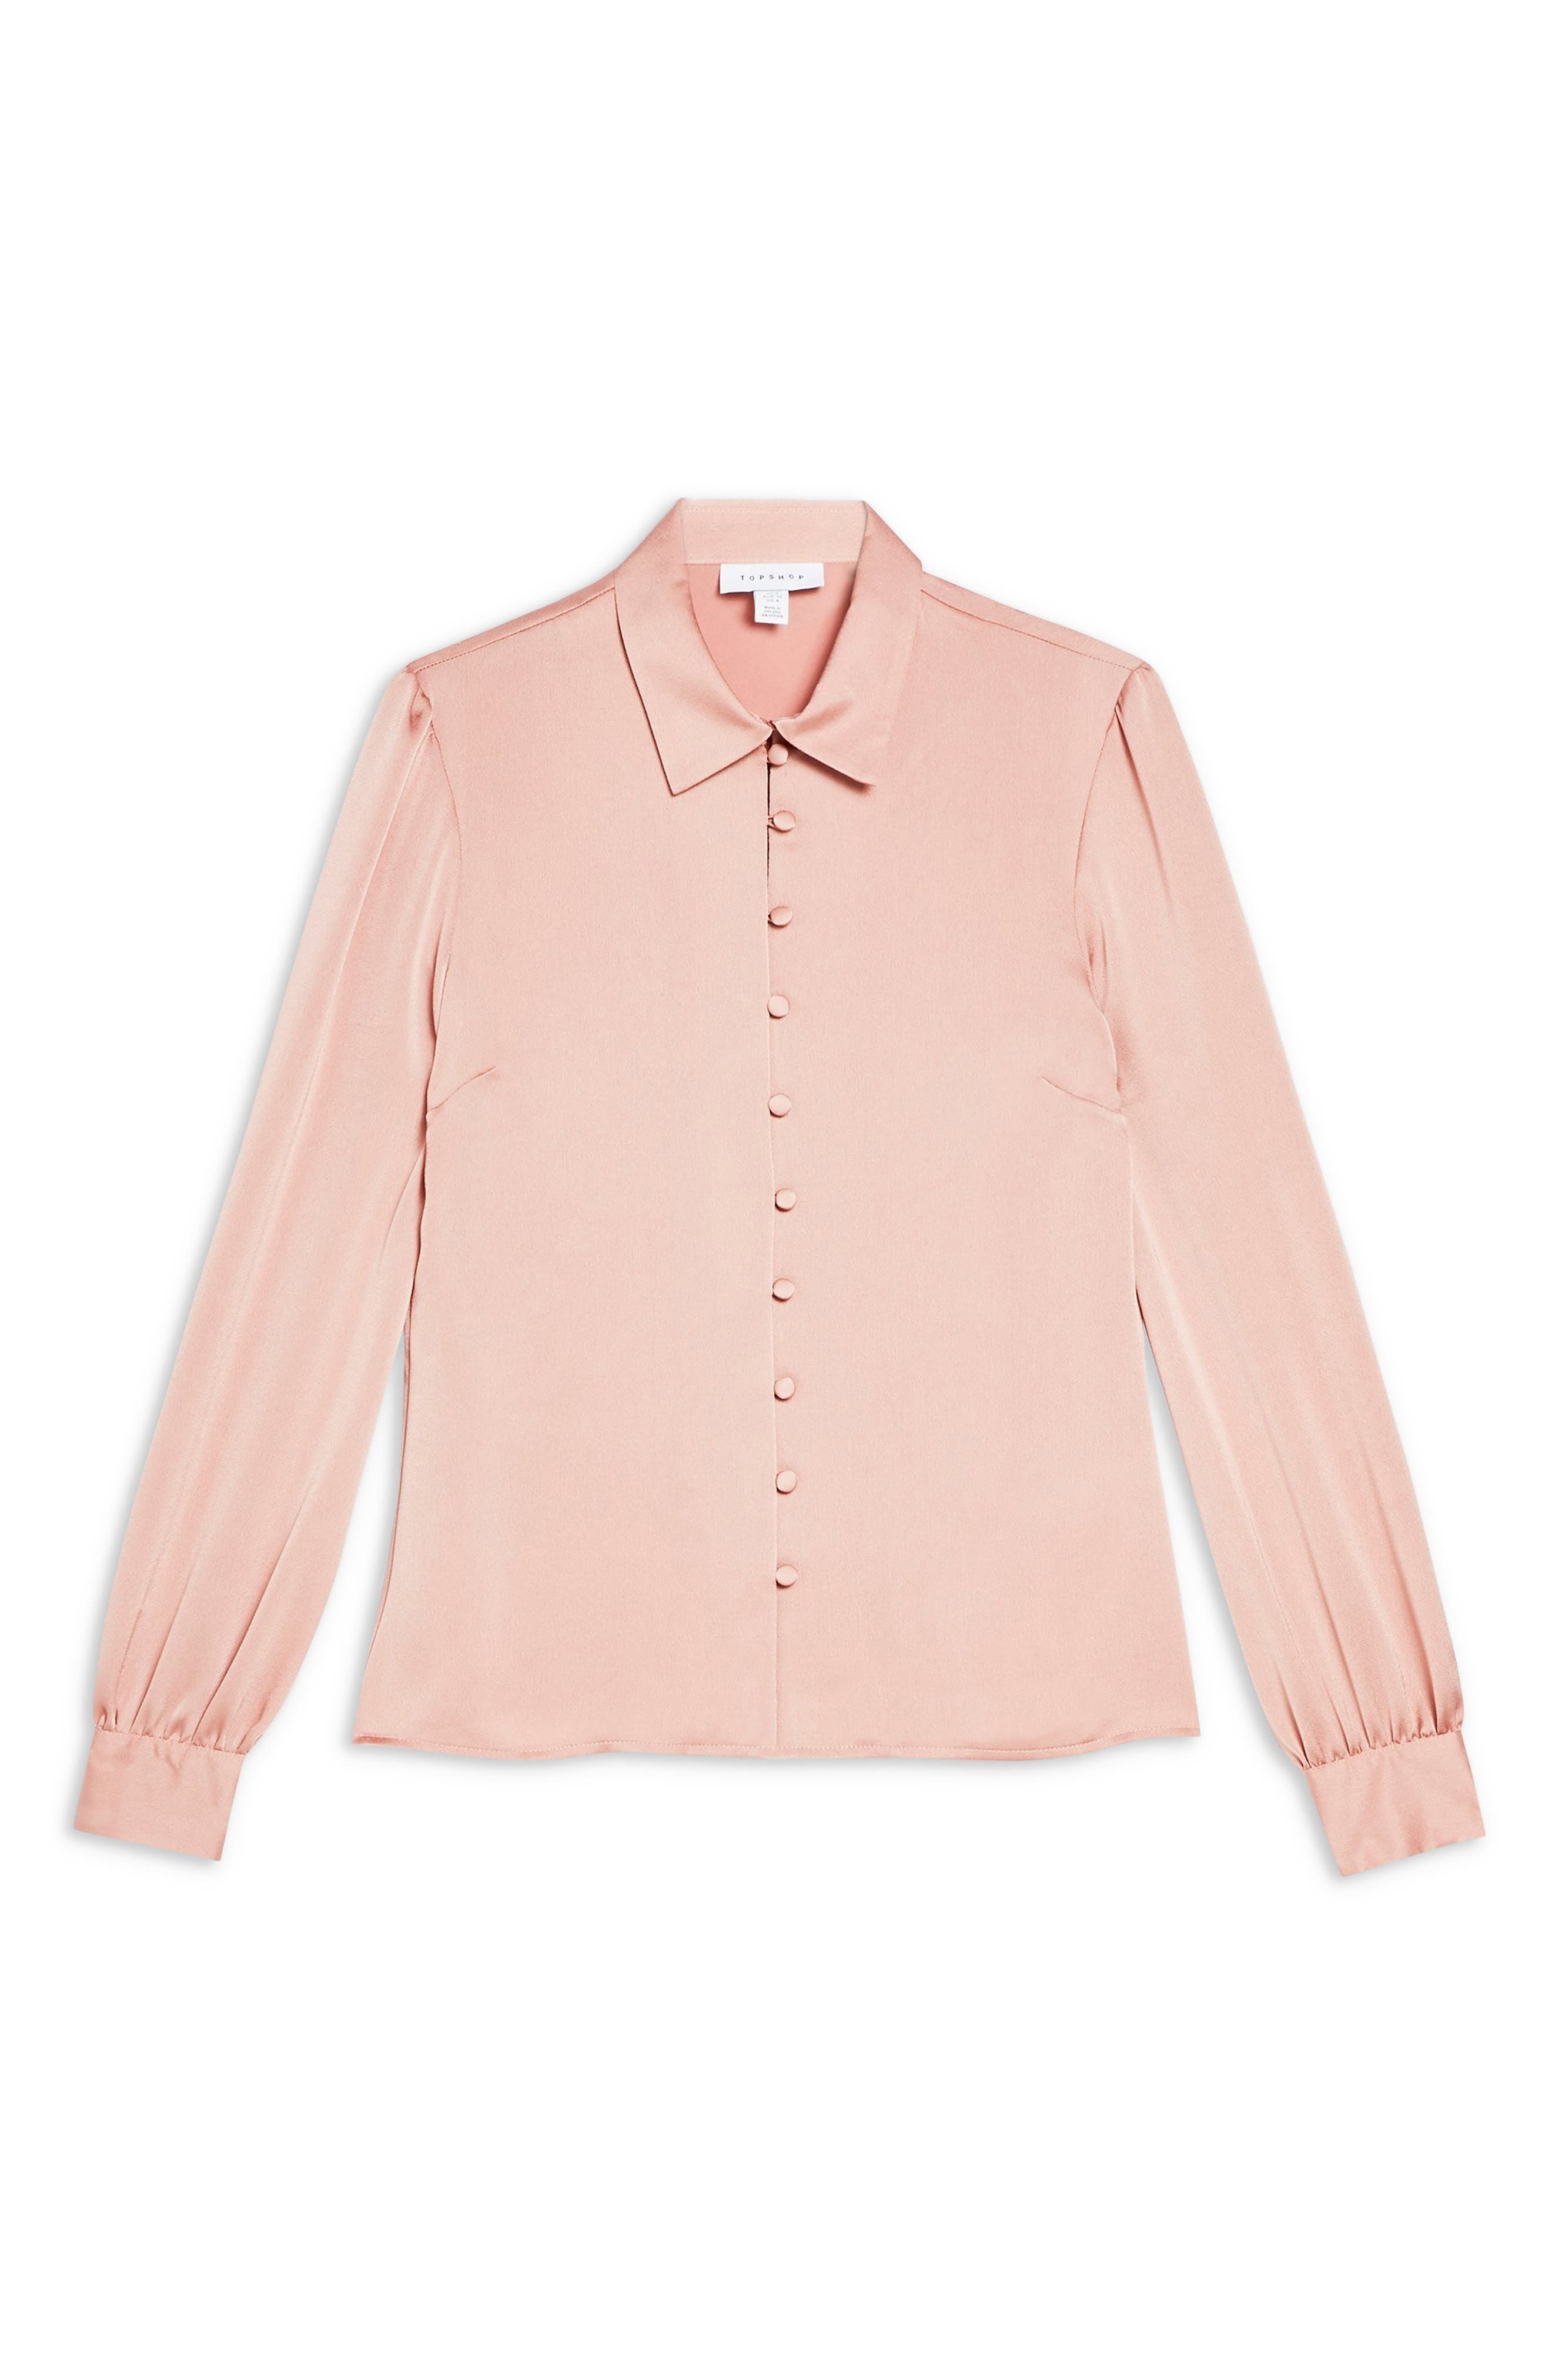 TOPSHOP, Rouleau Button Shirt, Alternate thumbnail 3, color, BLUSH